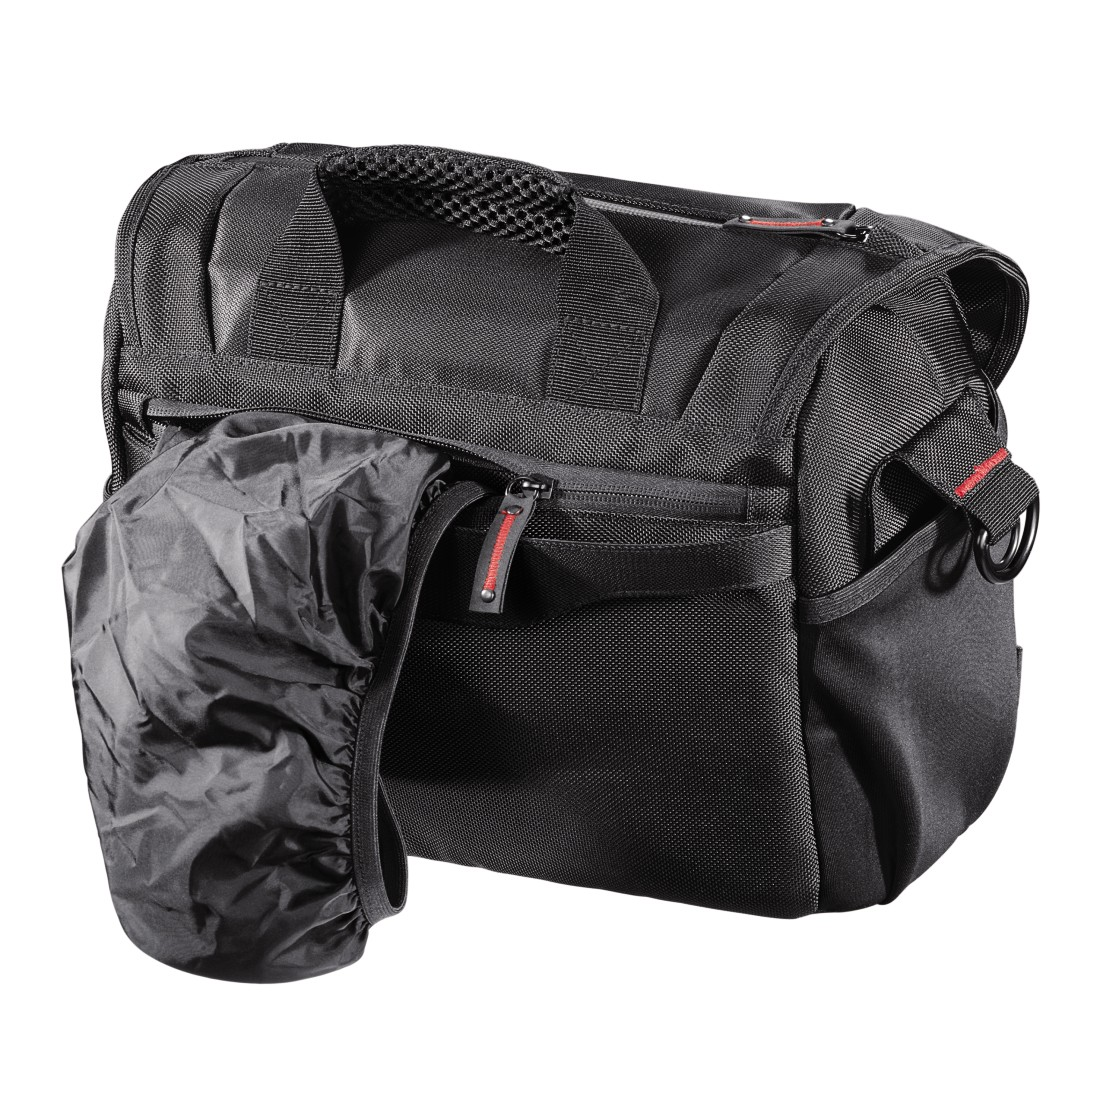 dex3 High-Res Detail 3 - Hama, Protour Camera Bag, 200, black